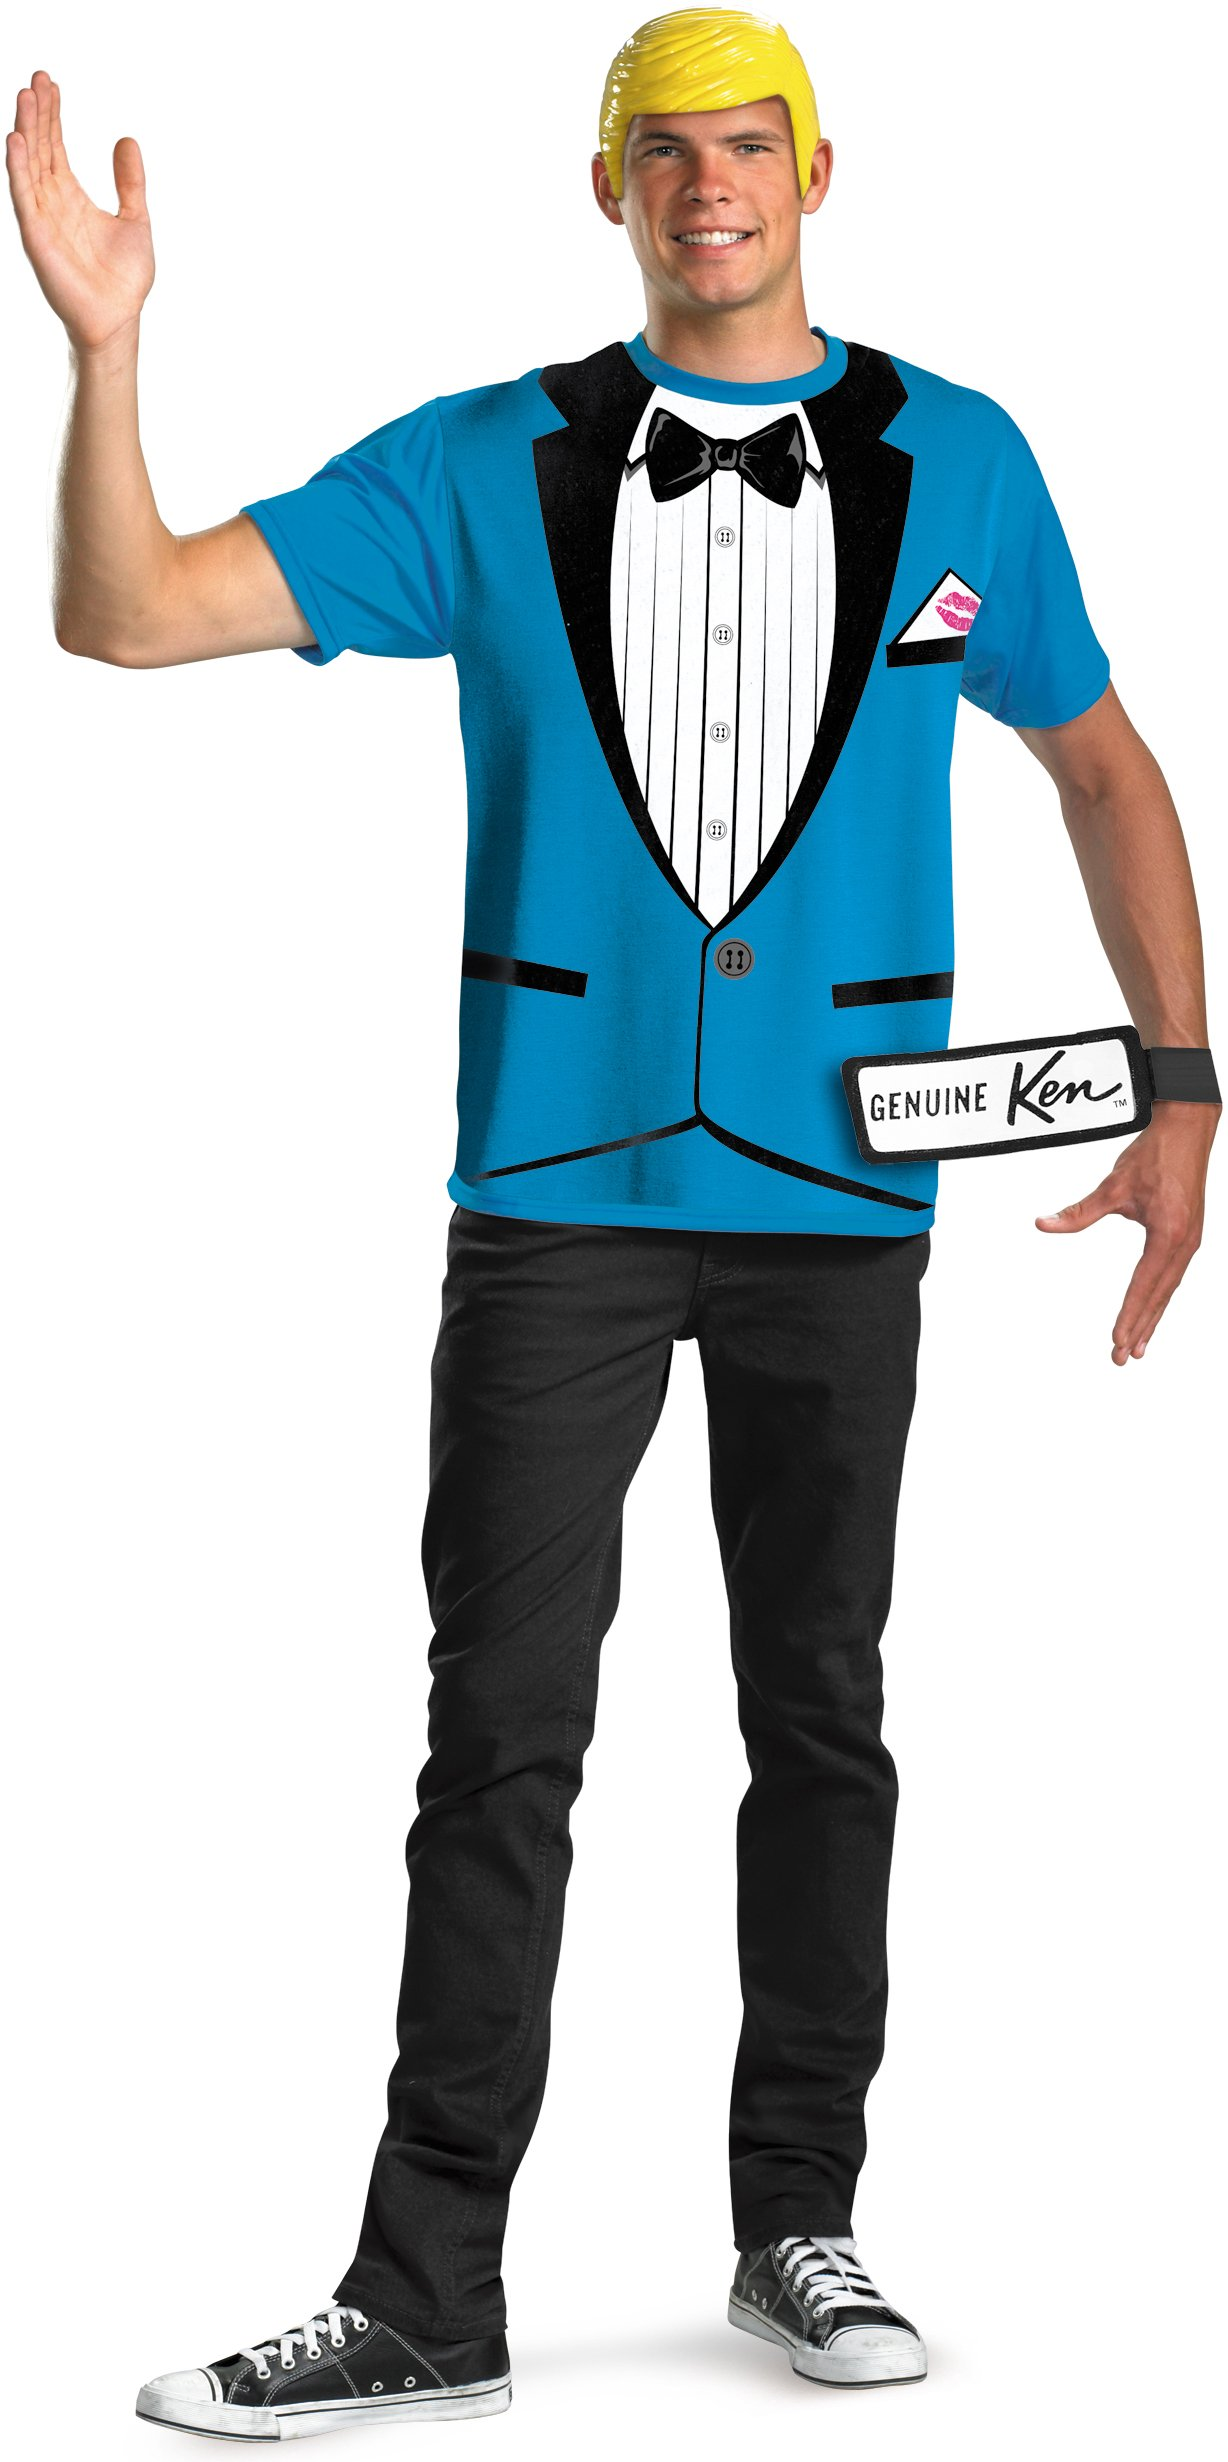 Ken T-Shirt And Mask Adult Costume Set